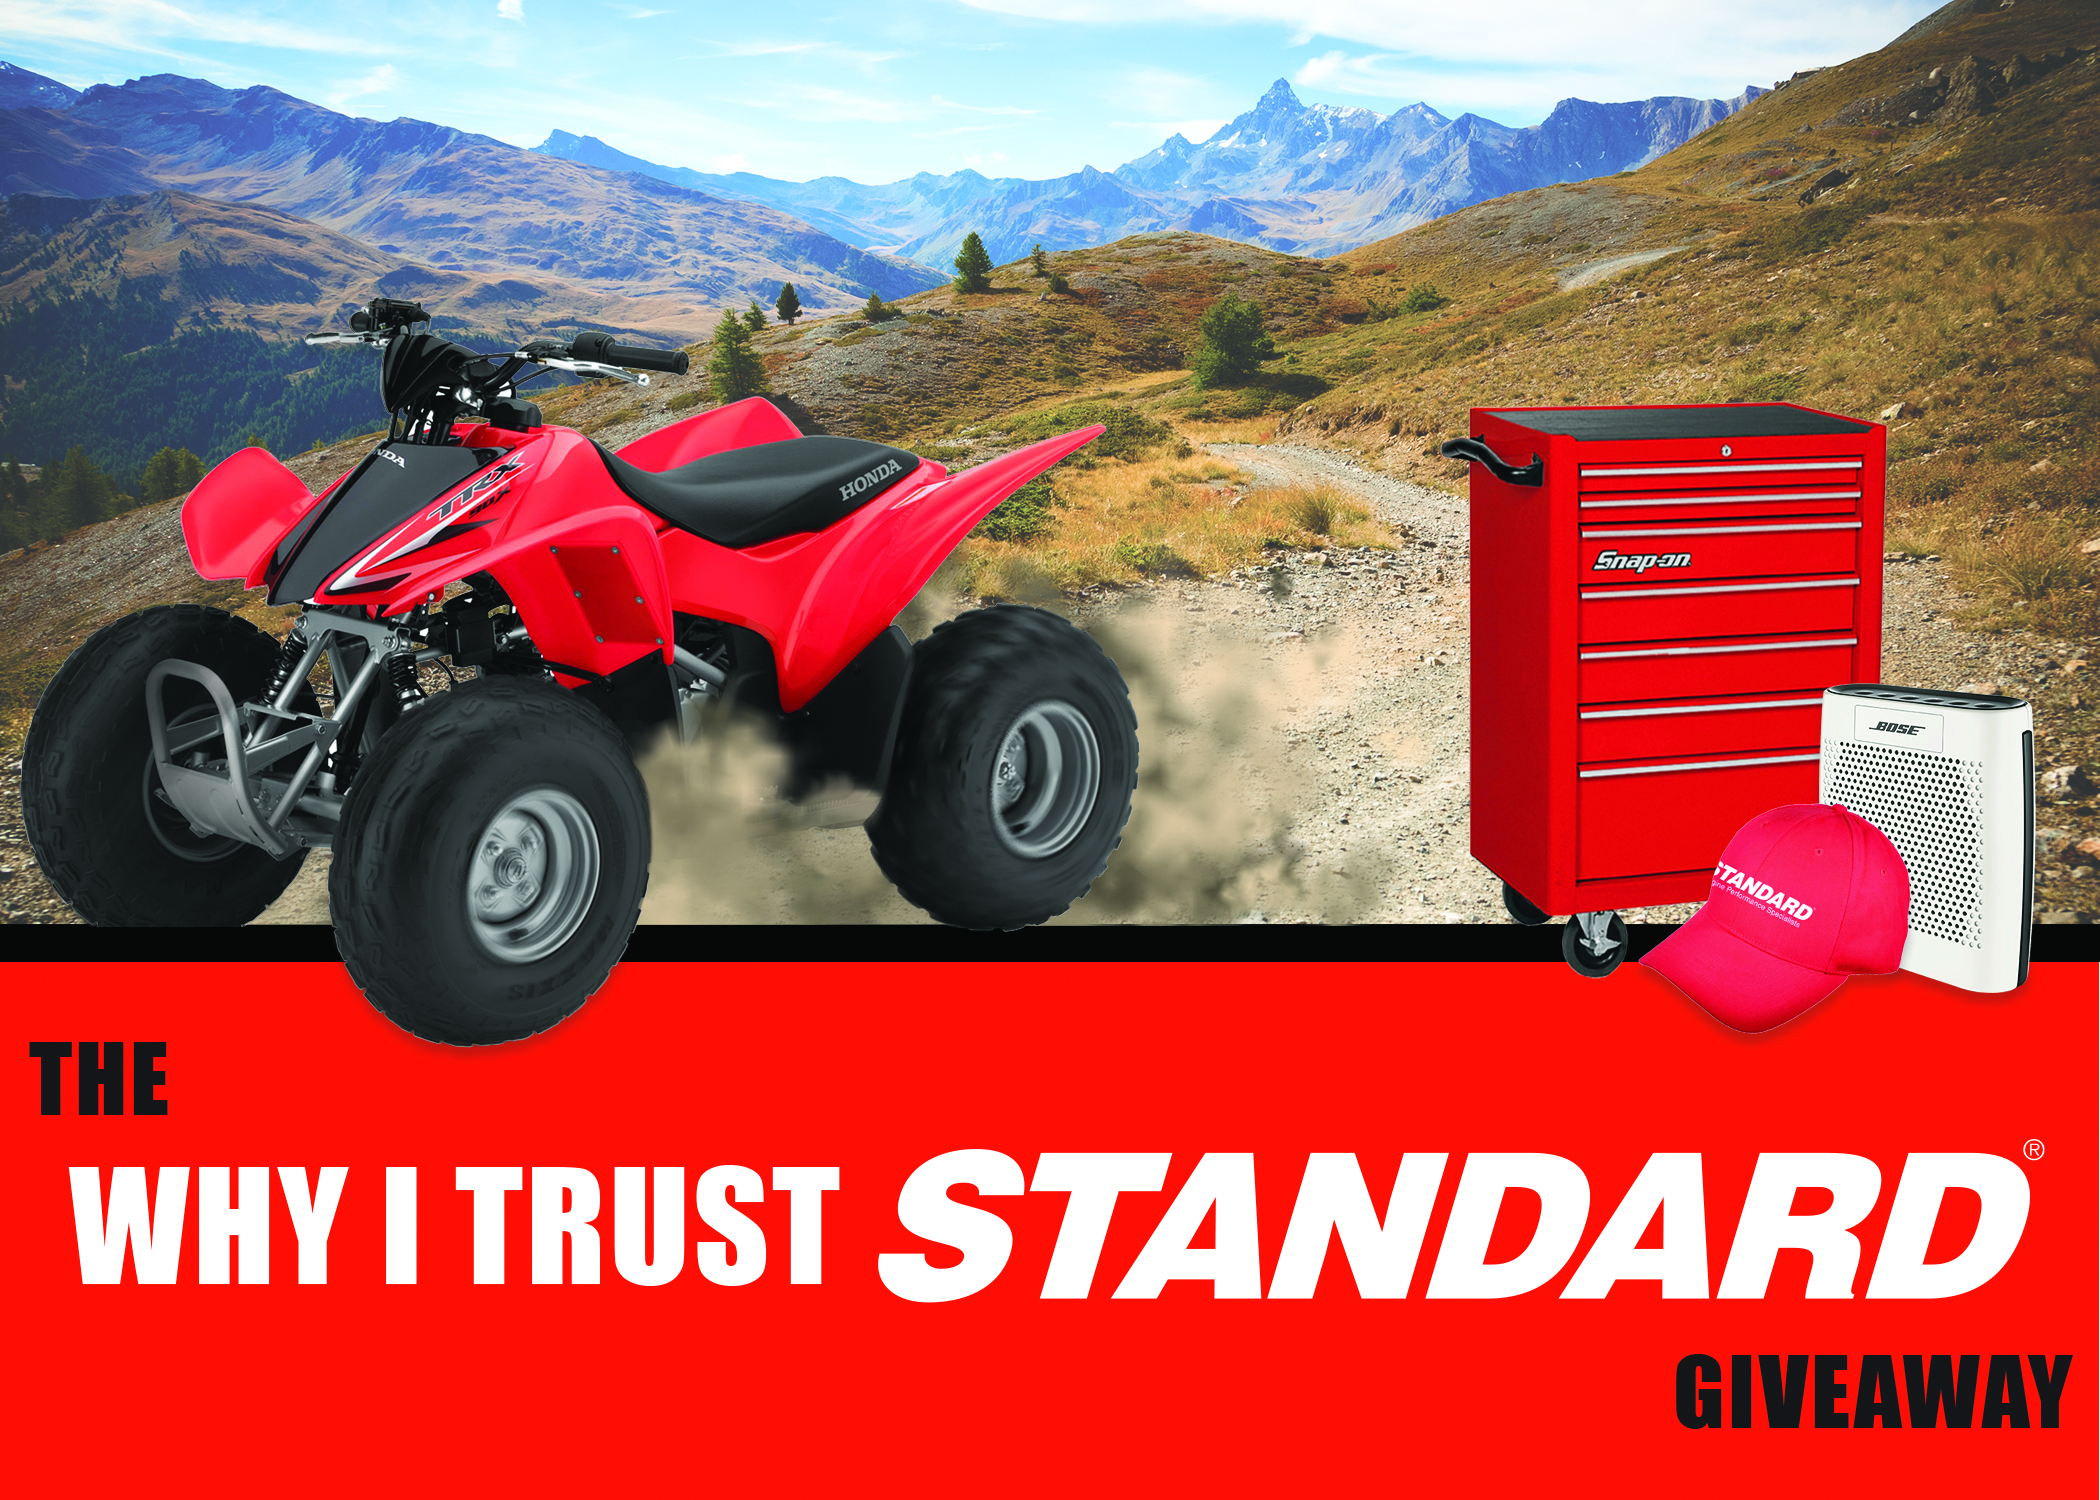 SMP to Award Over $10,000 in Prizes in 'Why I Trust Standard' Giveaway